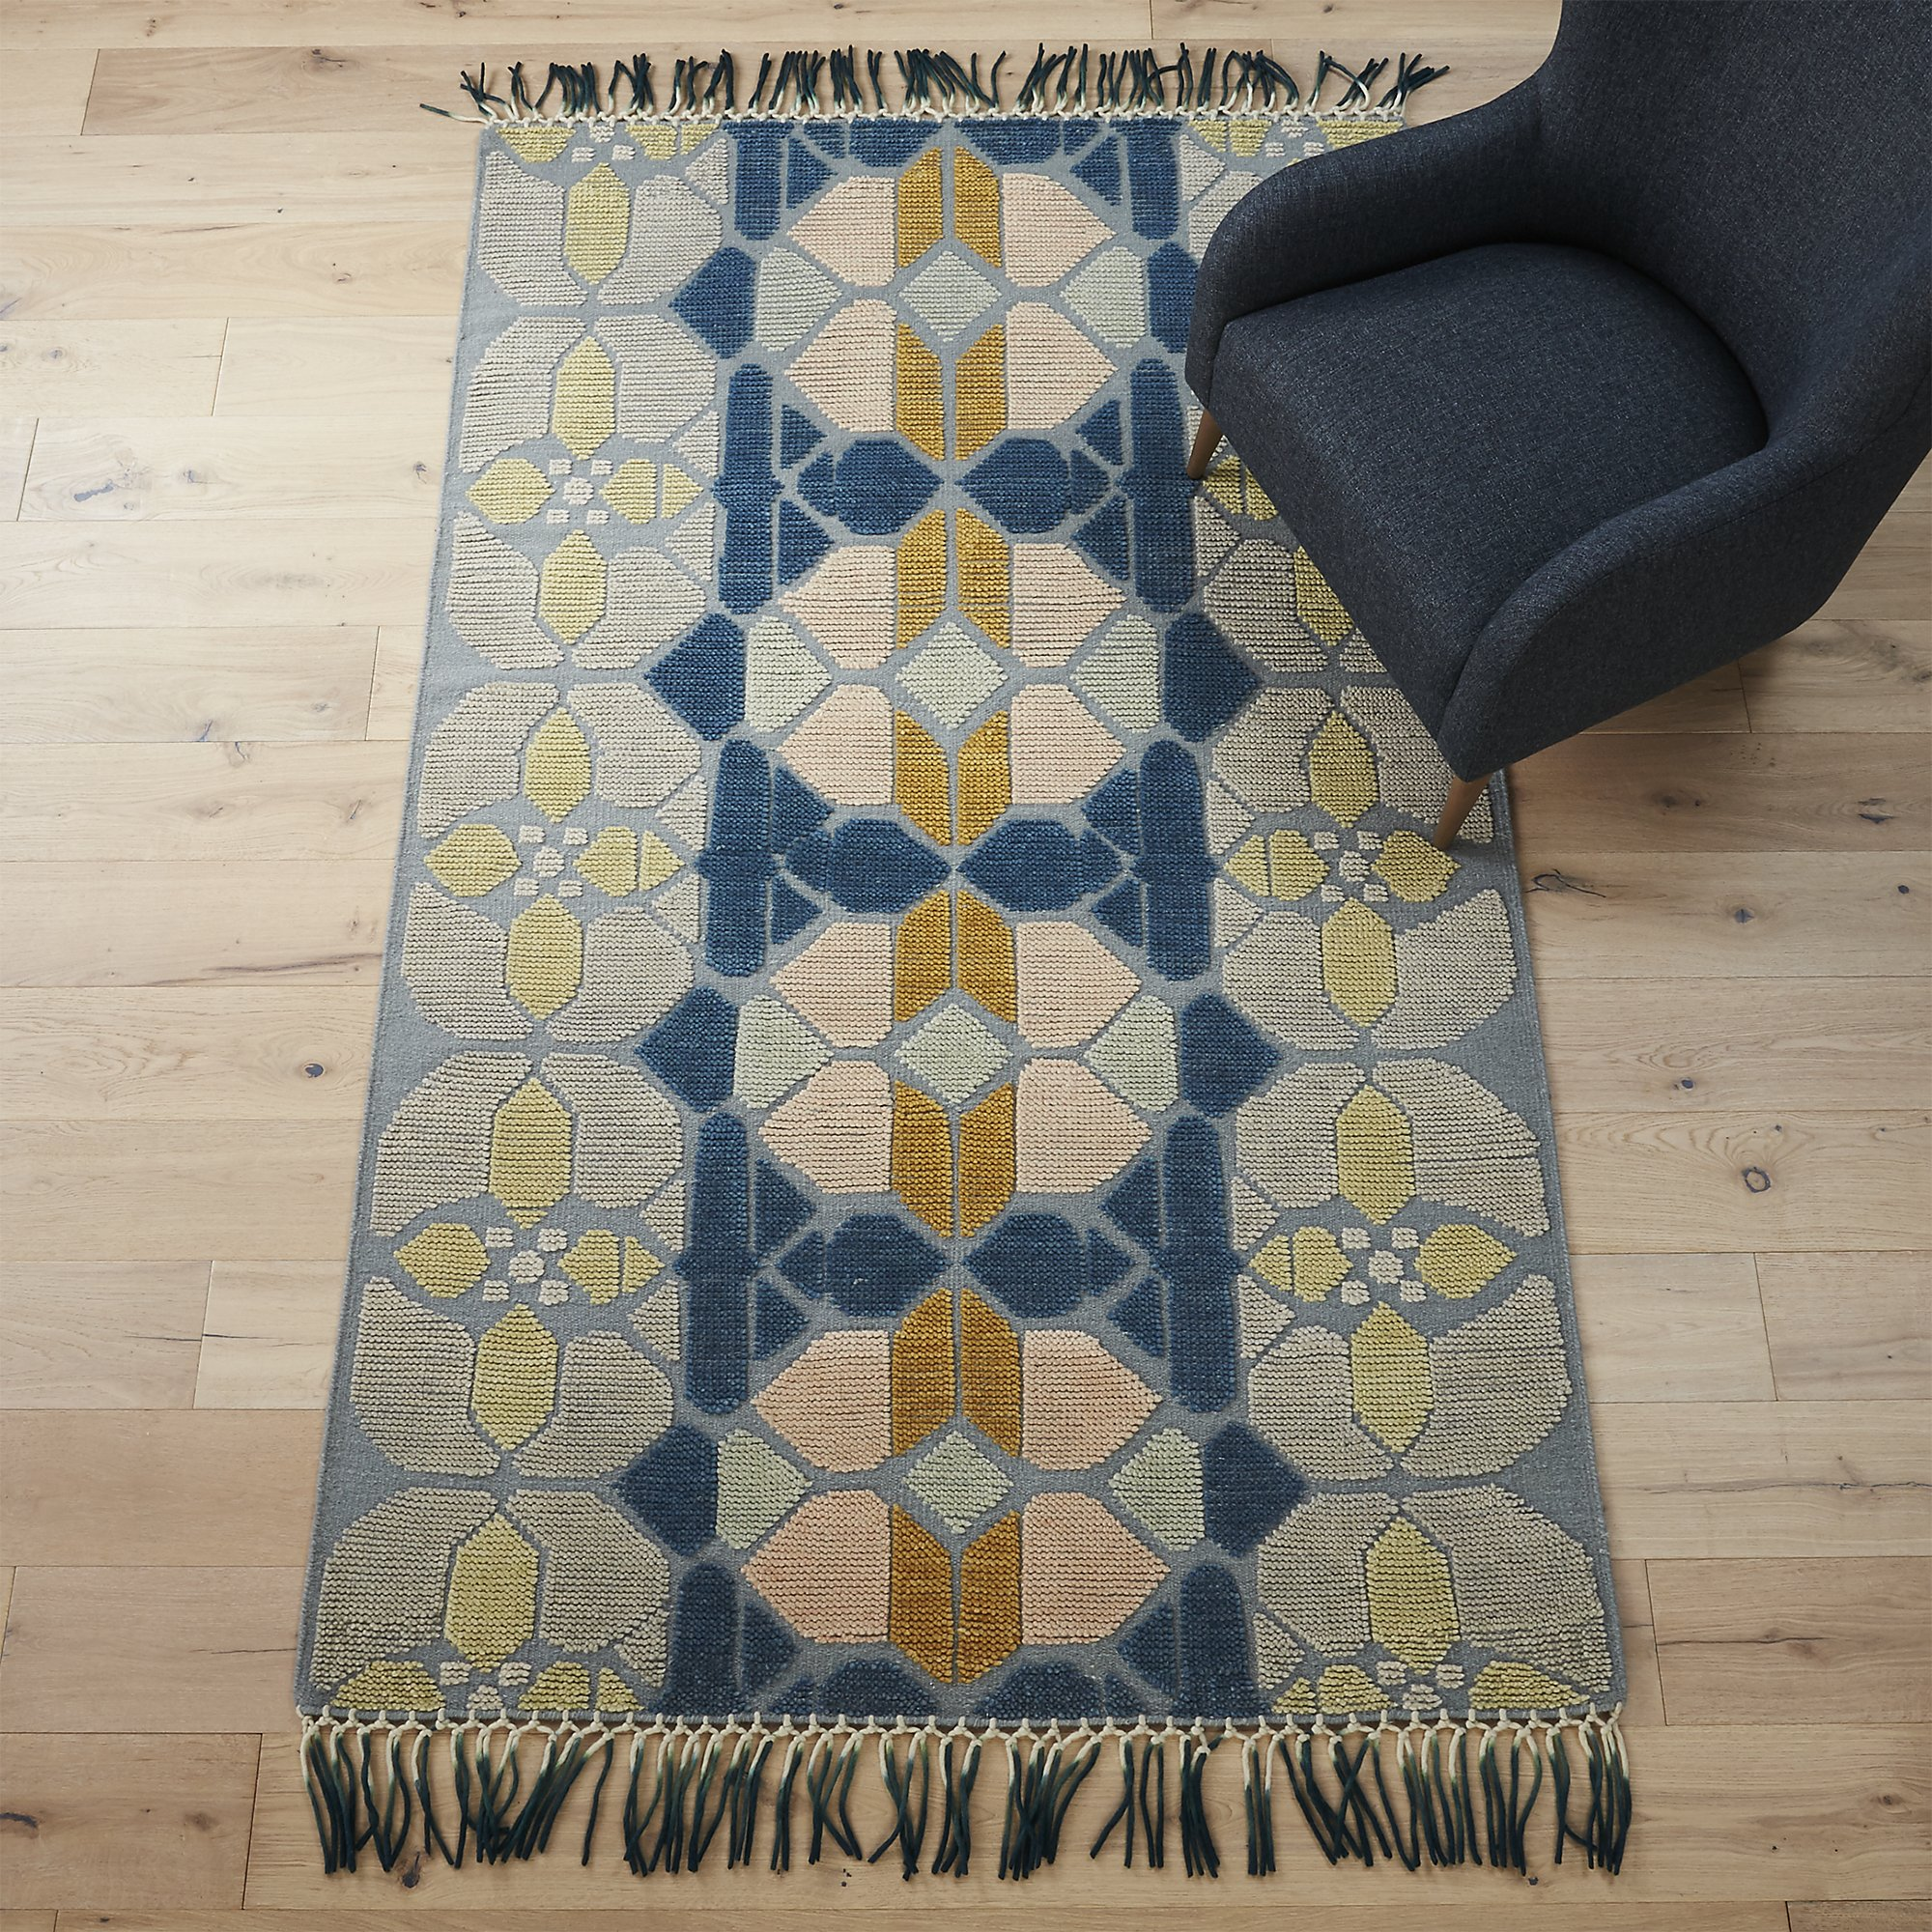 3.hand-knotted-stained-glass-rug-8x10.jpg